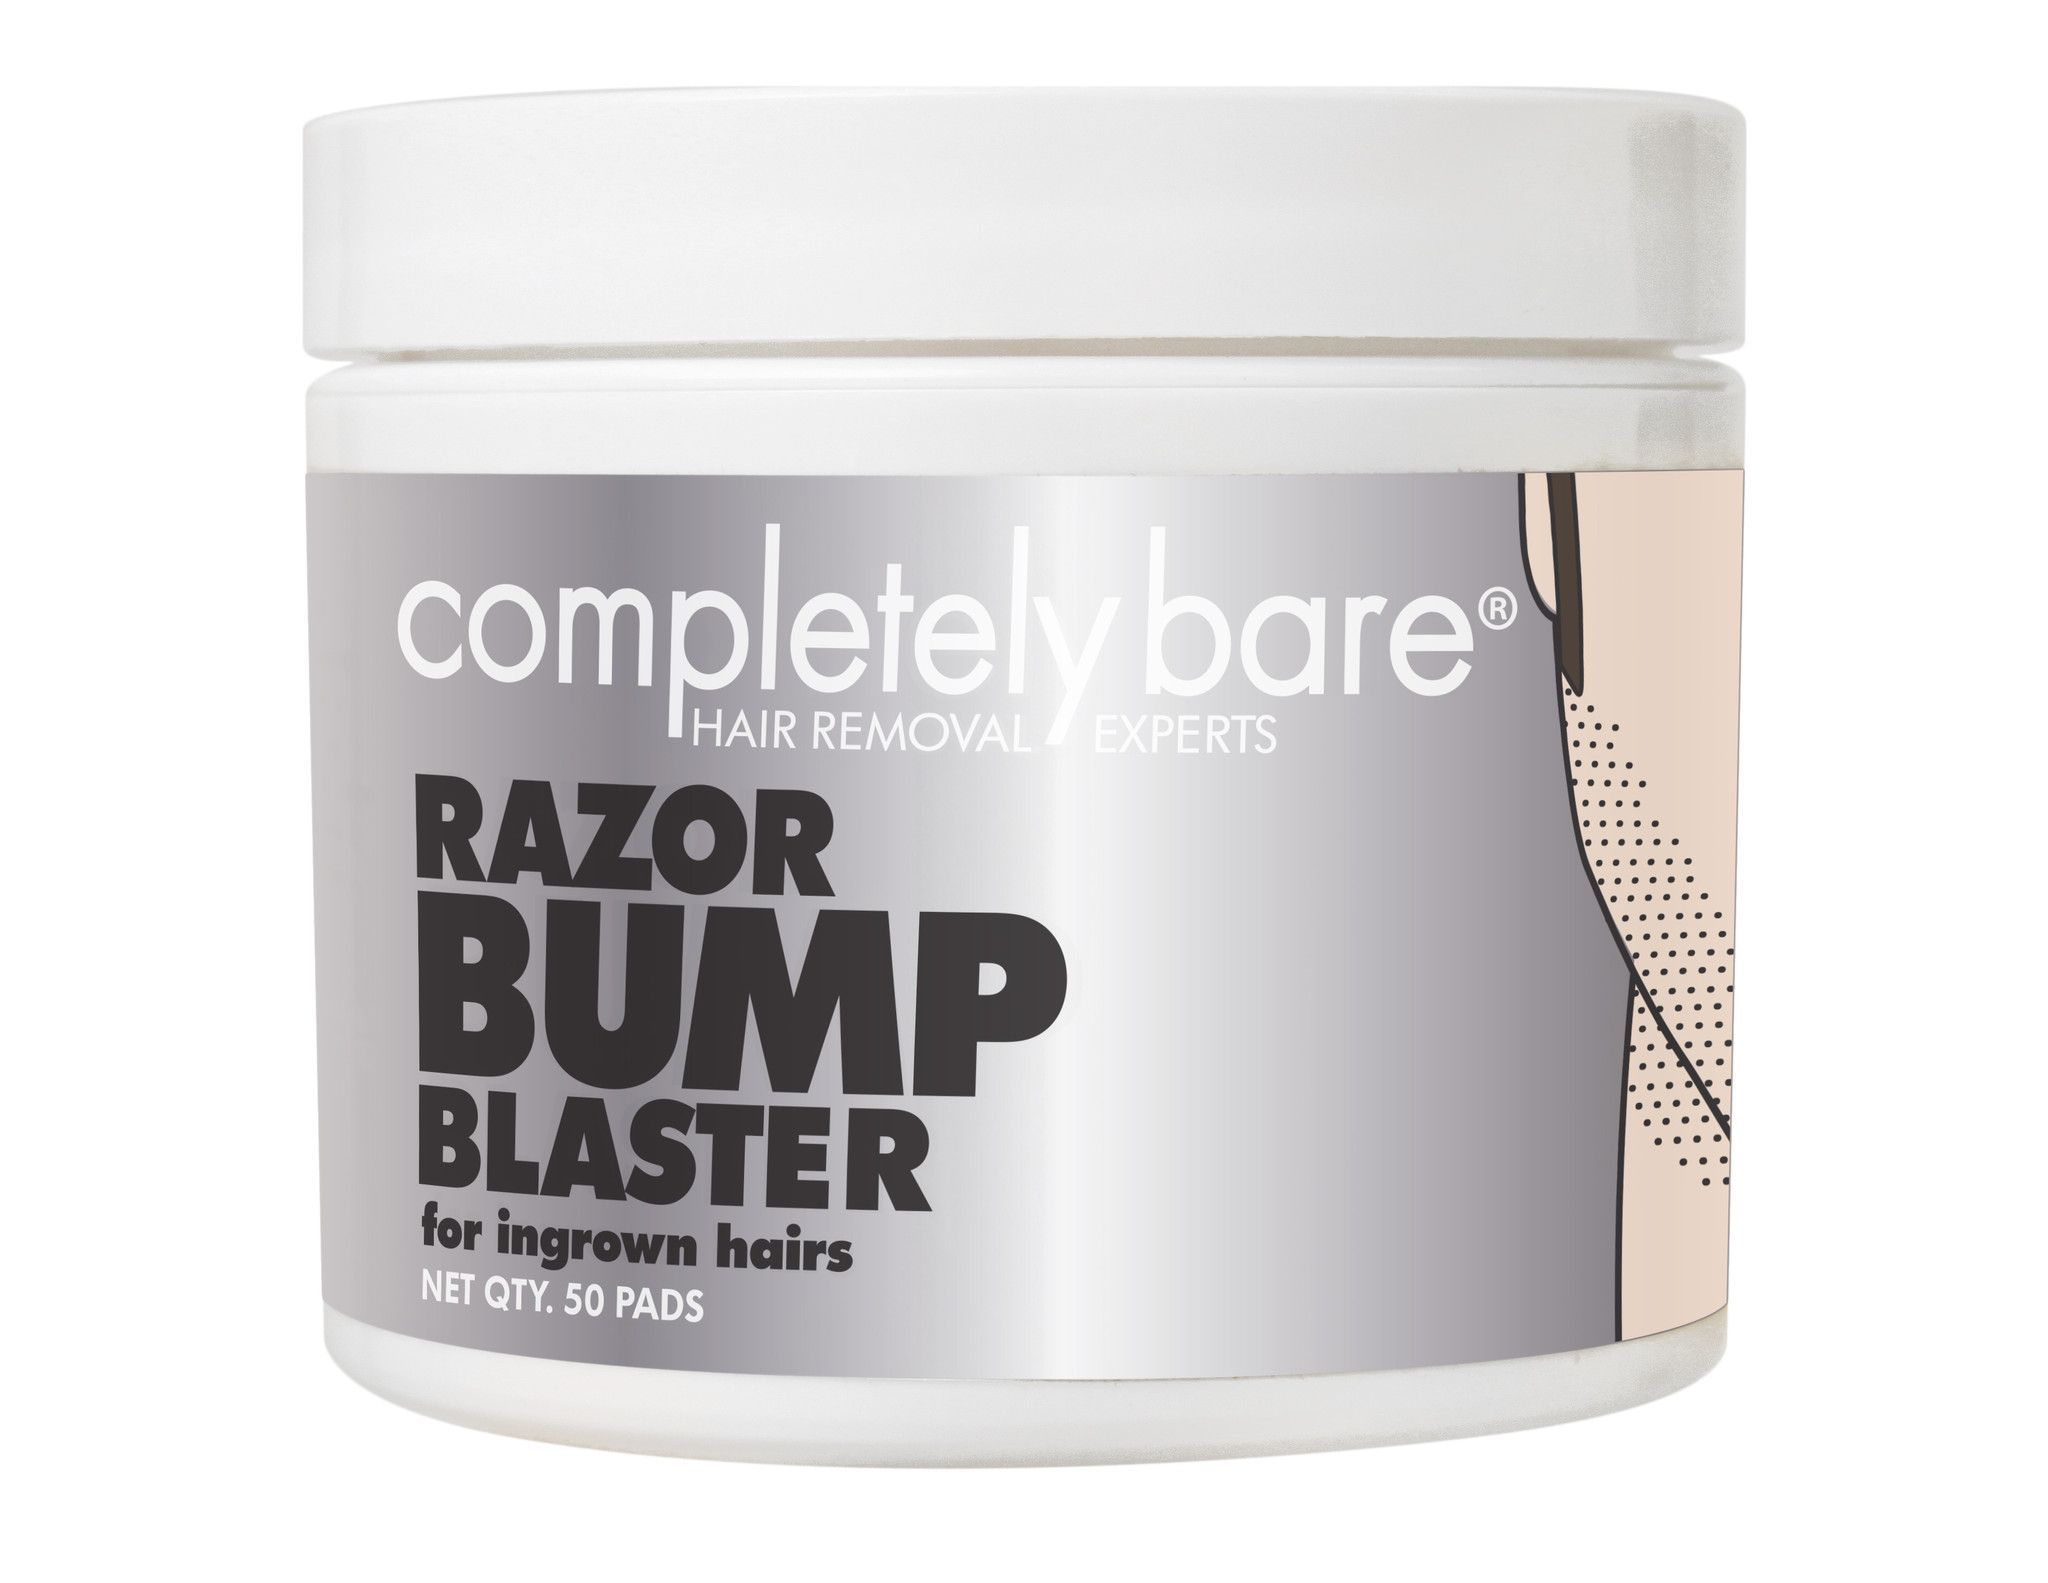 Razor Bump Blaster Ingrown Hair Razor Bump Eliminator For Men